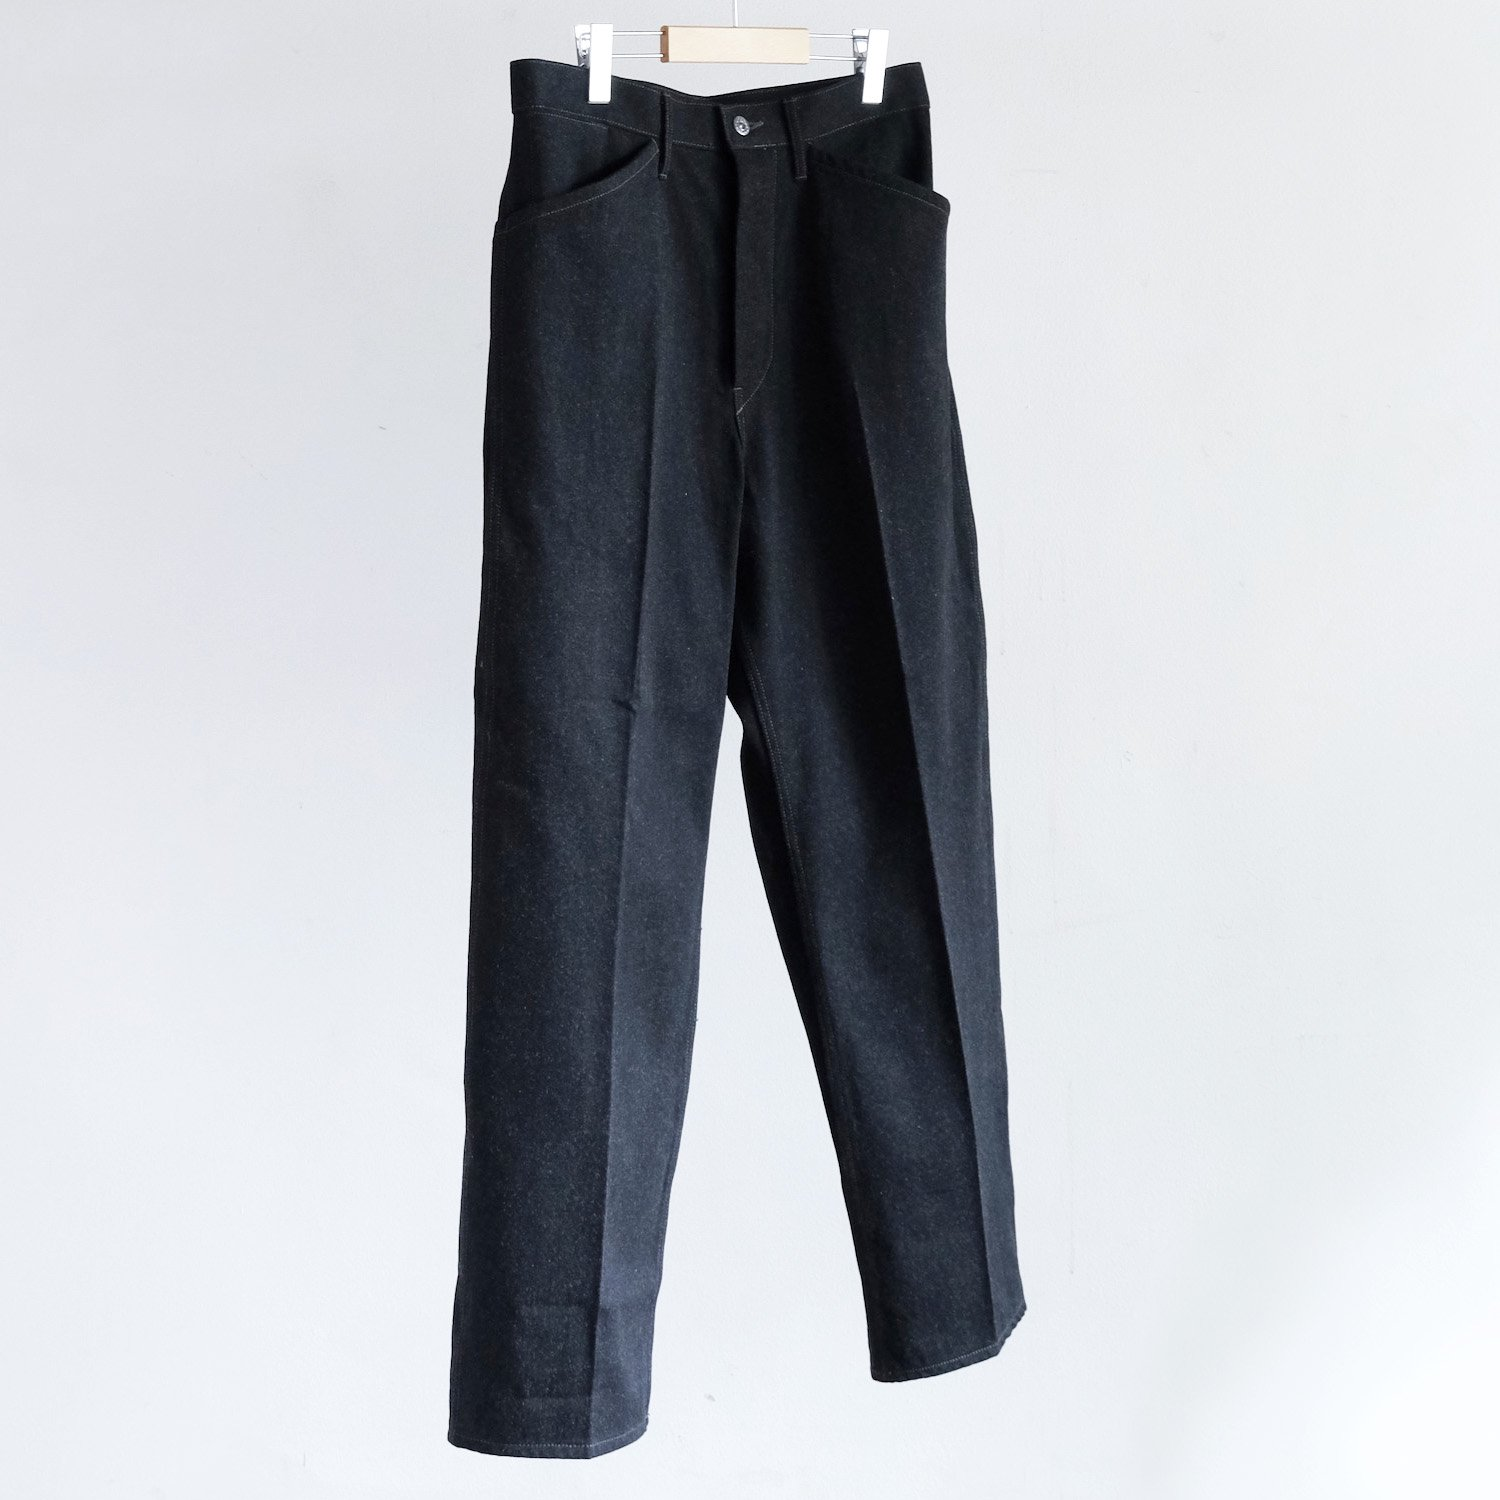 WORK TROUSERS [BLACK / SULFUR DYES]